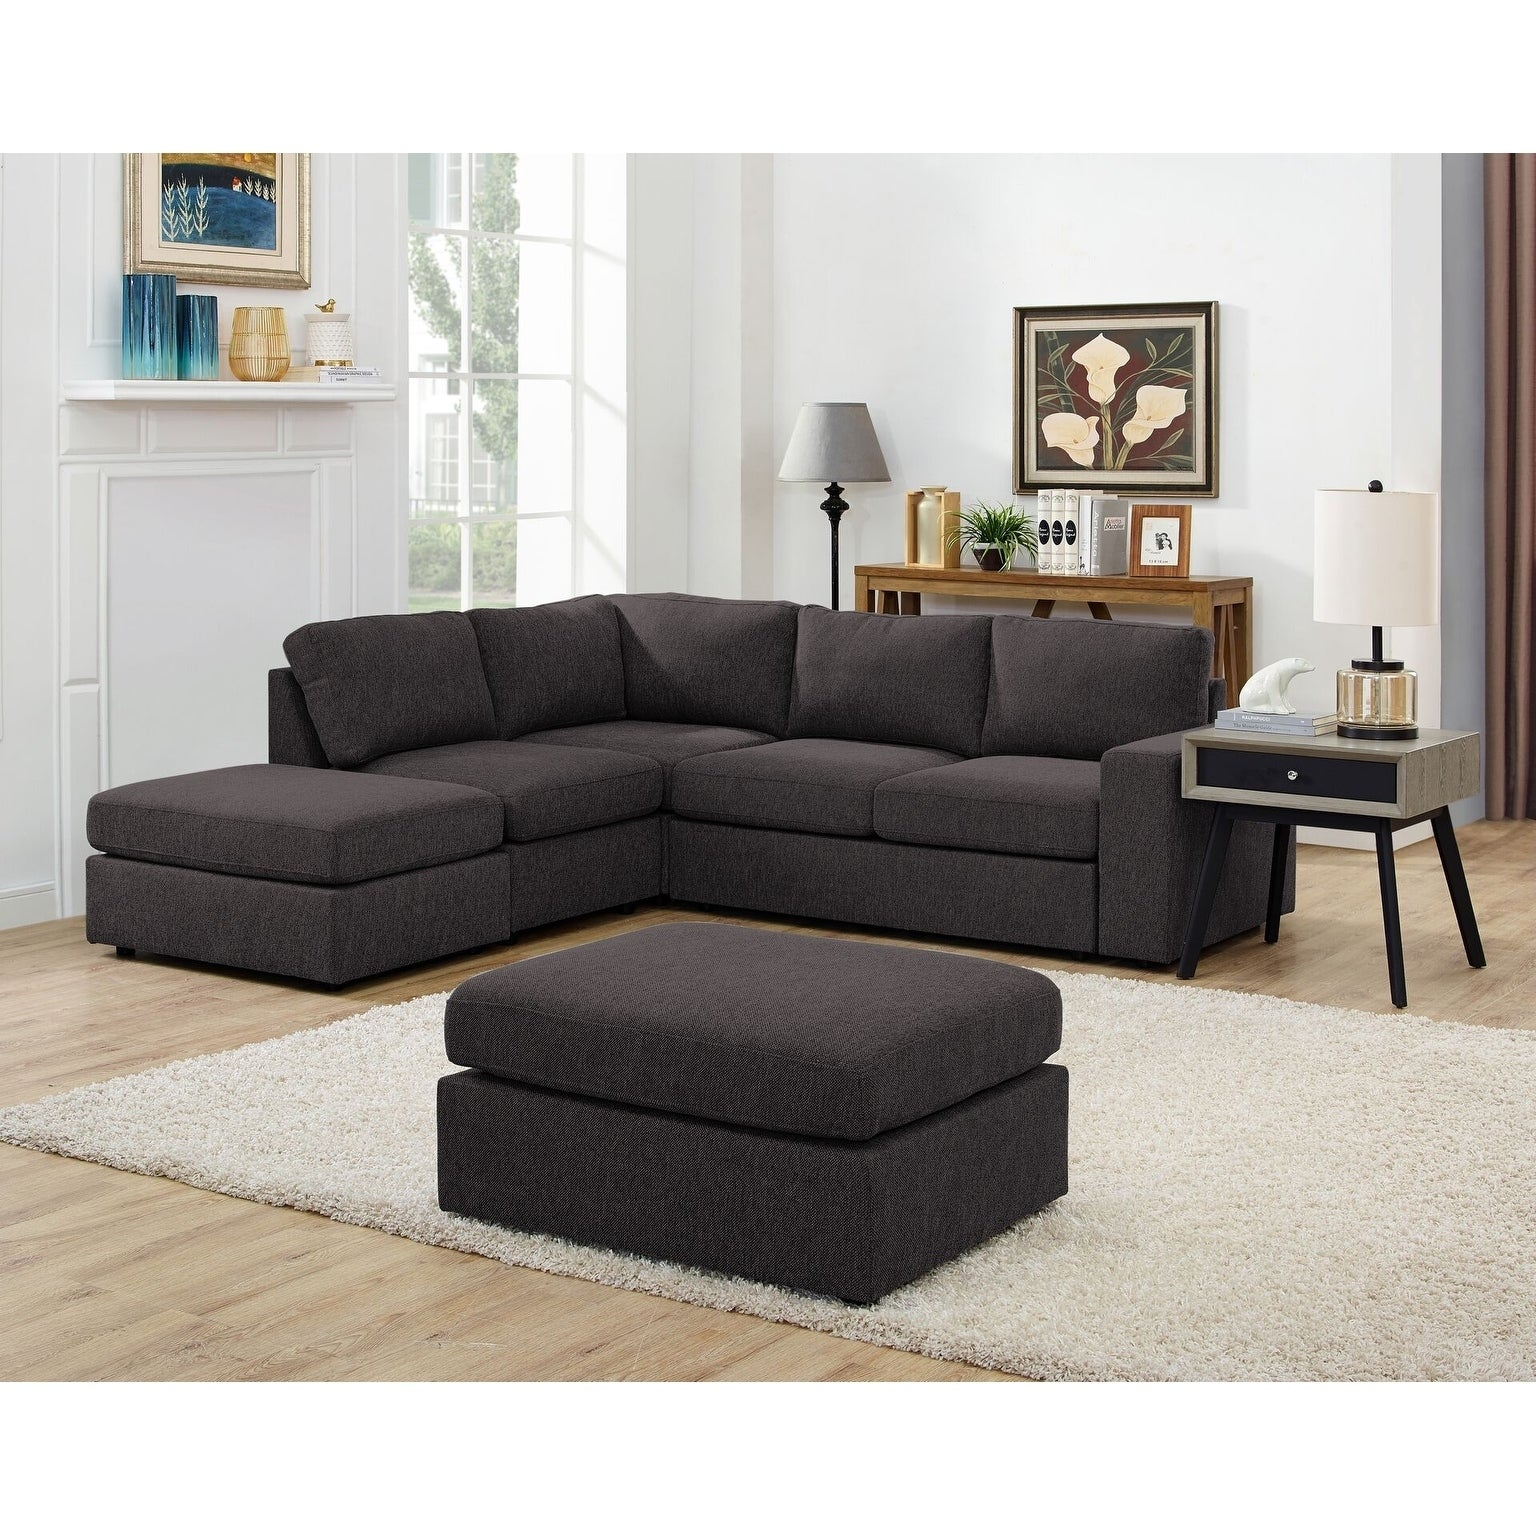 Collections Of 6 Piece Modular Sectional With Ottoman